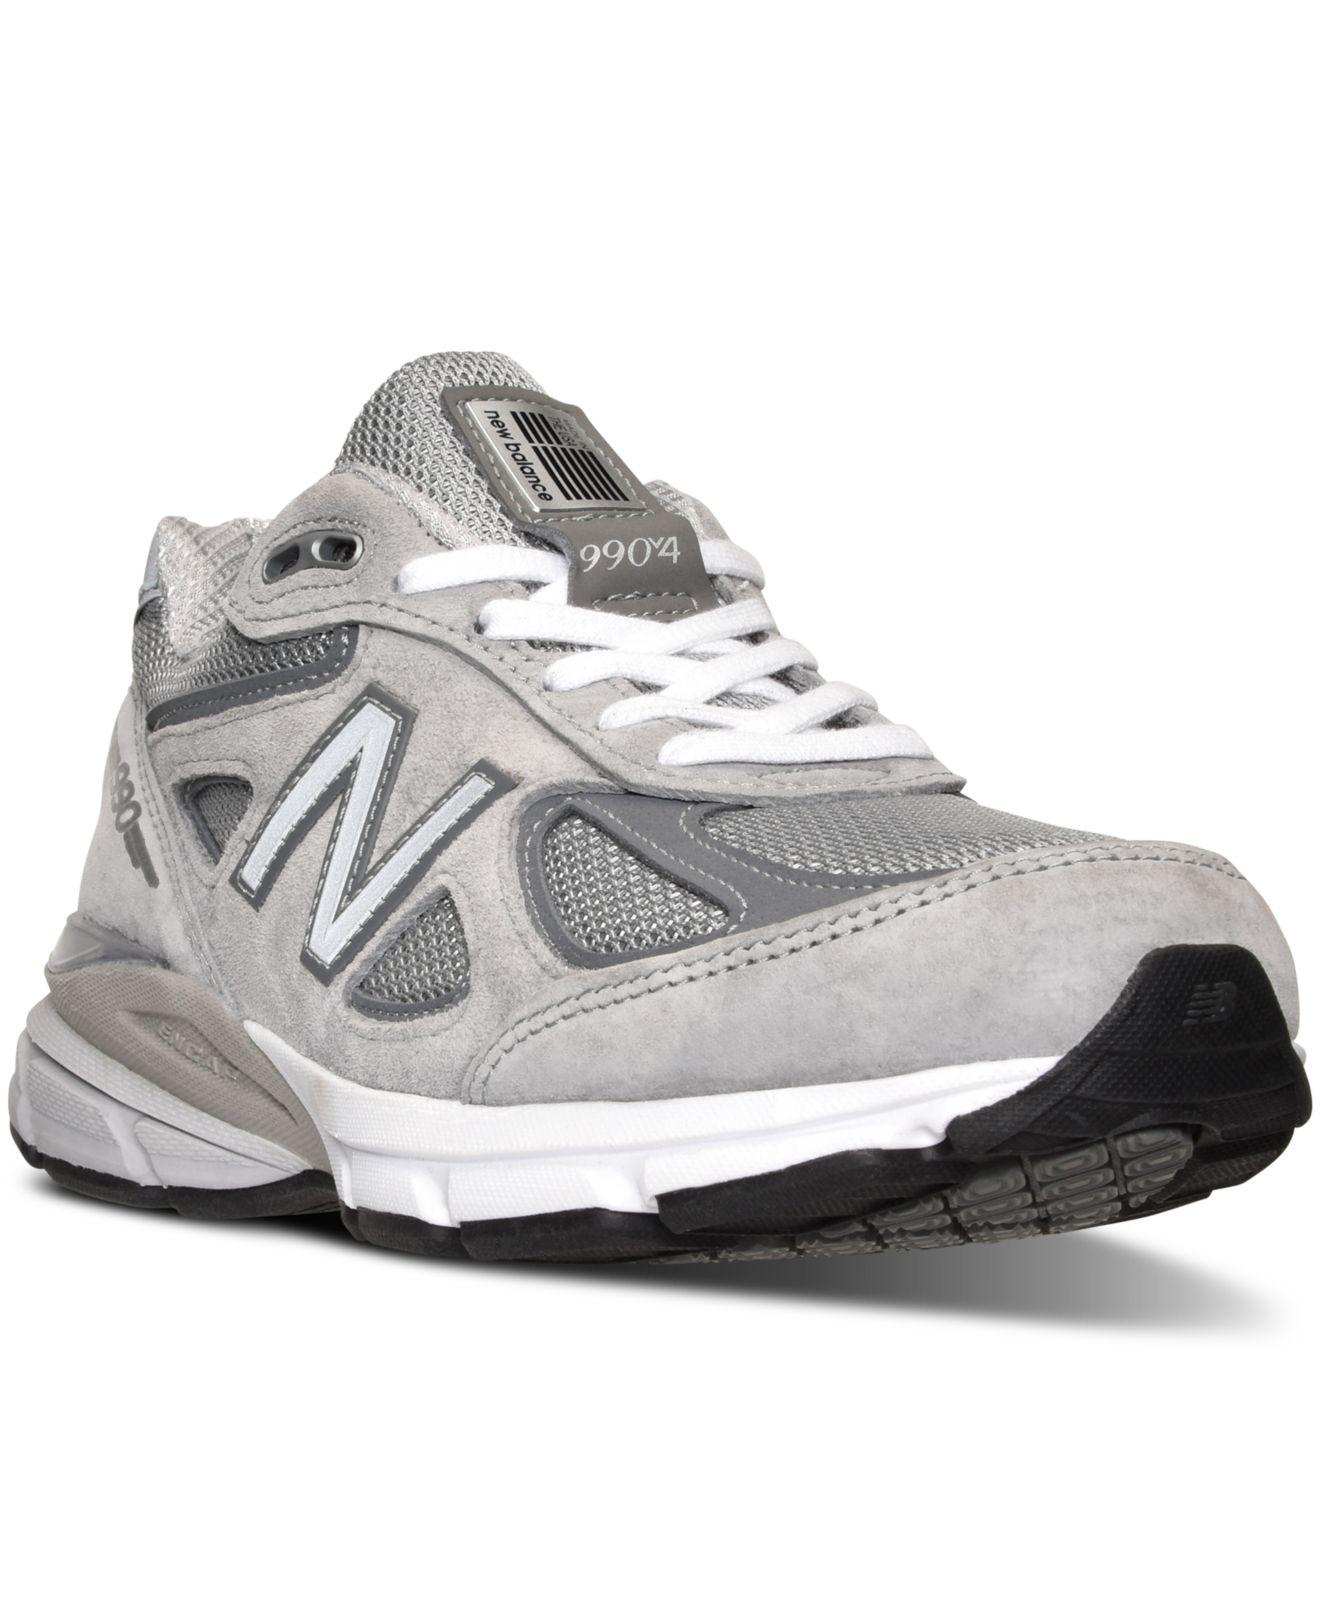 New Balance - Gray Women s W990gl4 Running Sneakers From Finish Line -  Lyst. View fullscreen bd5319eec442